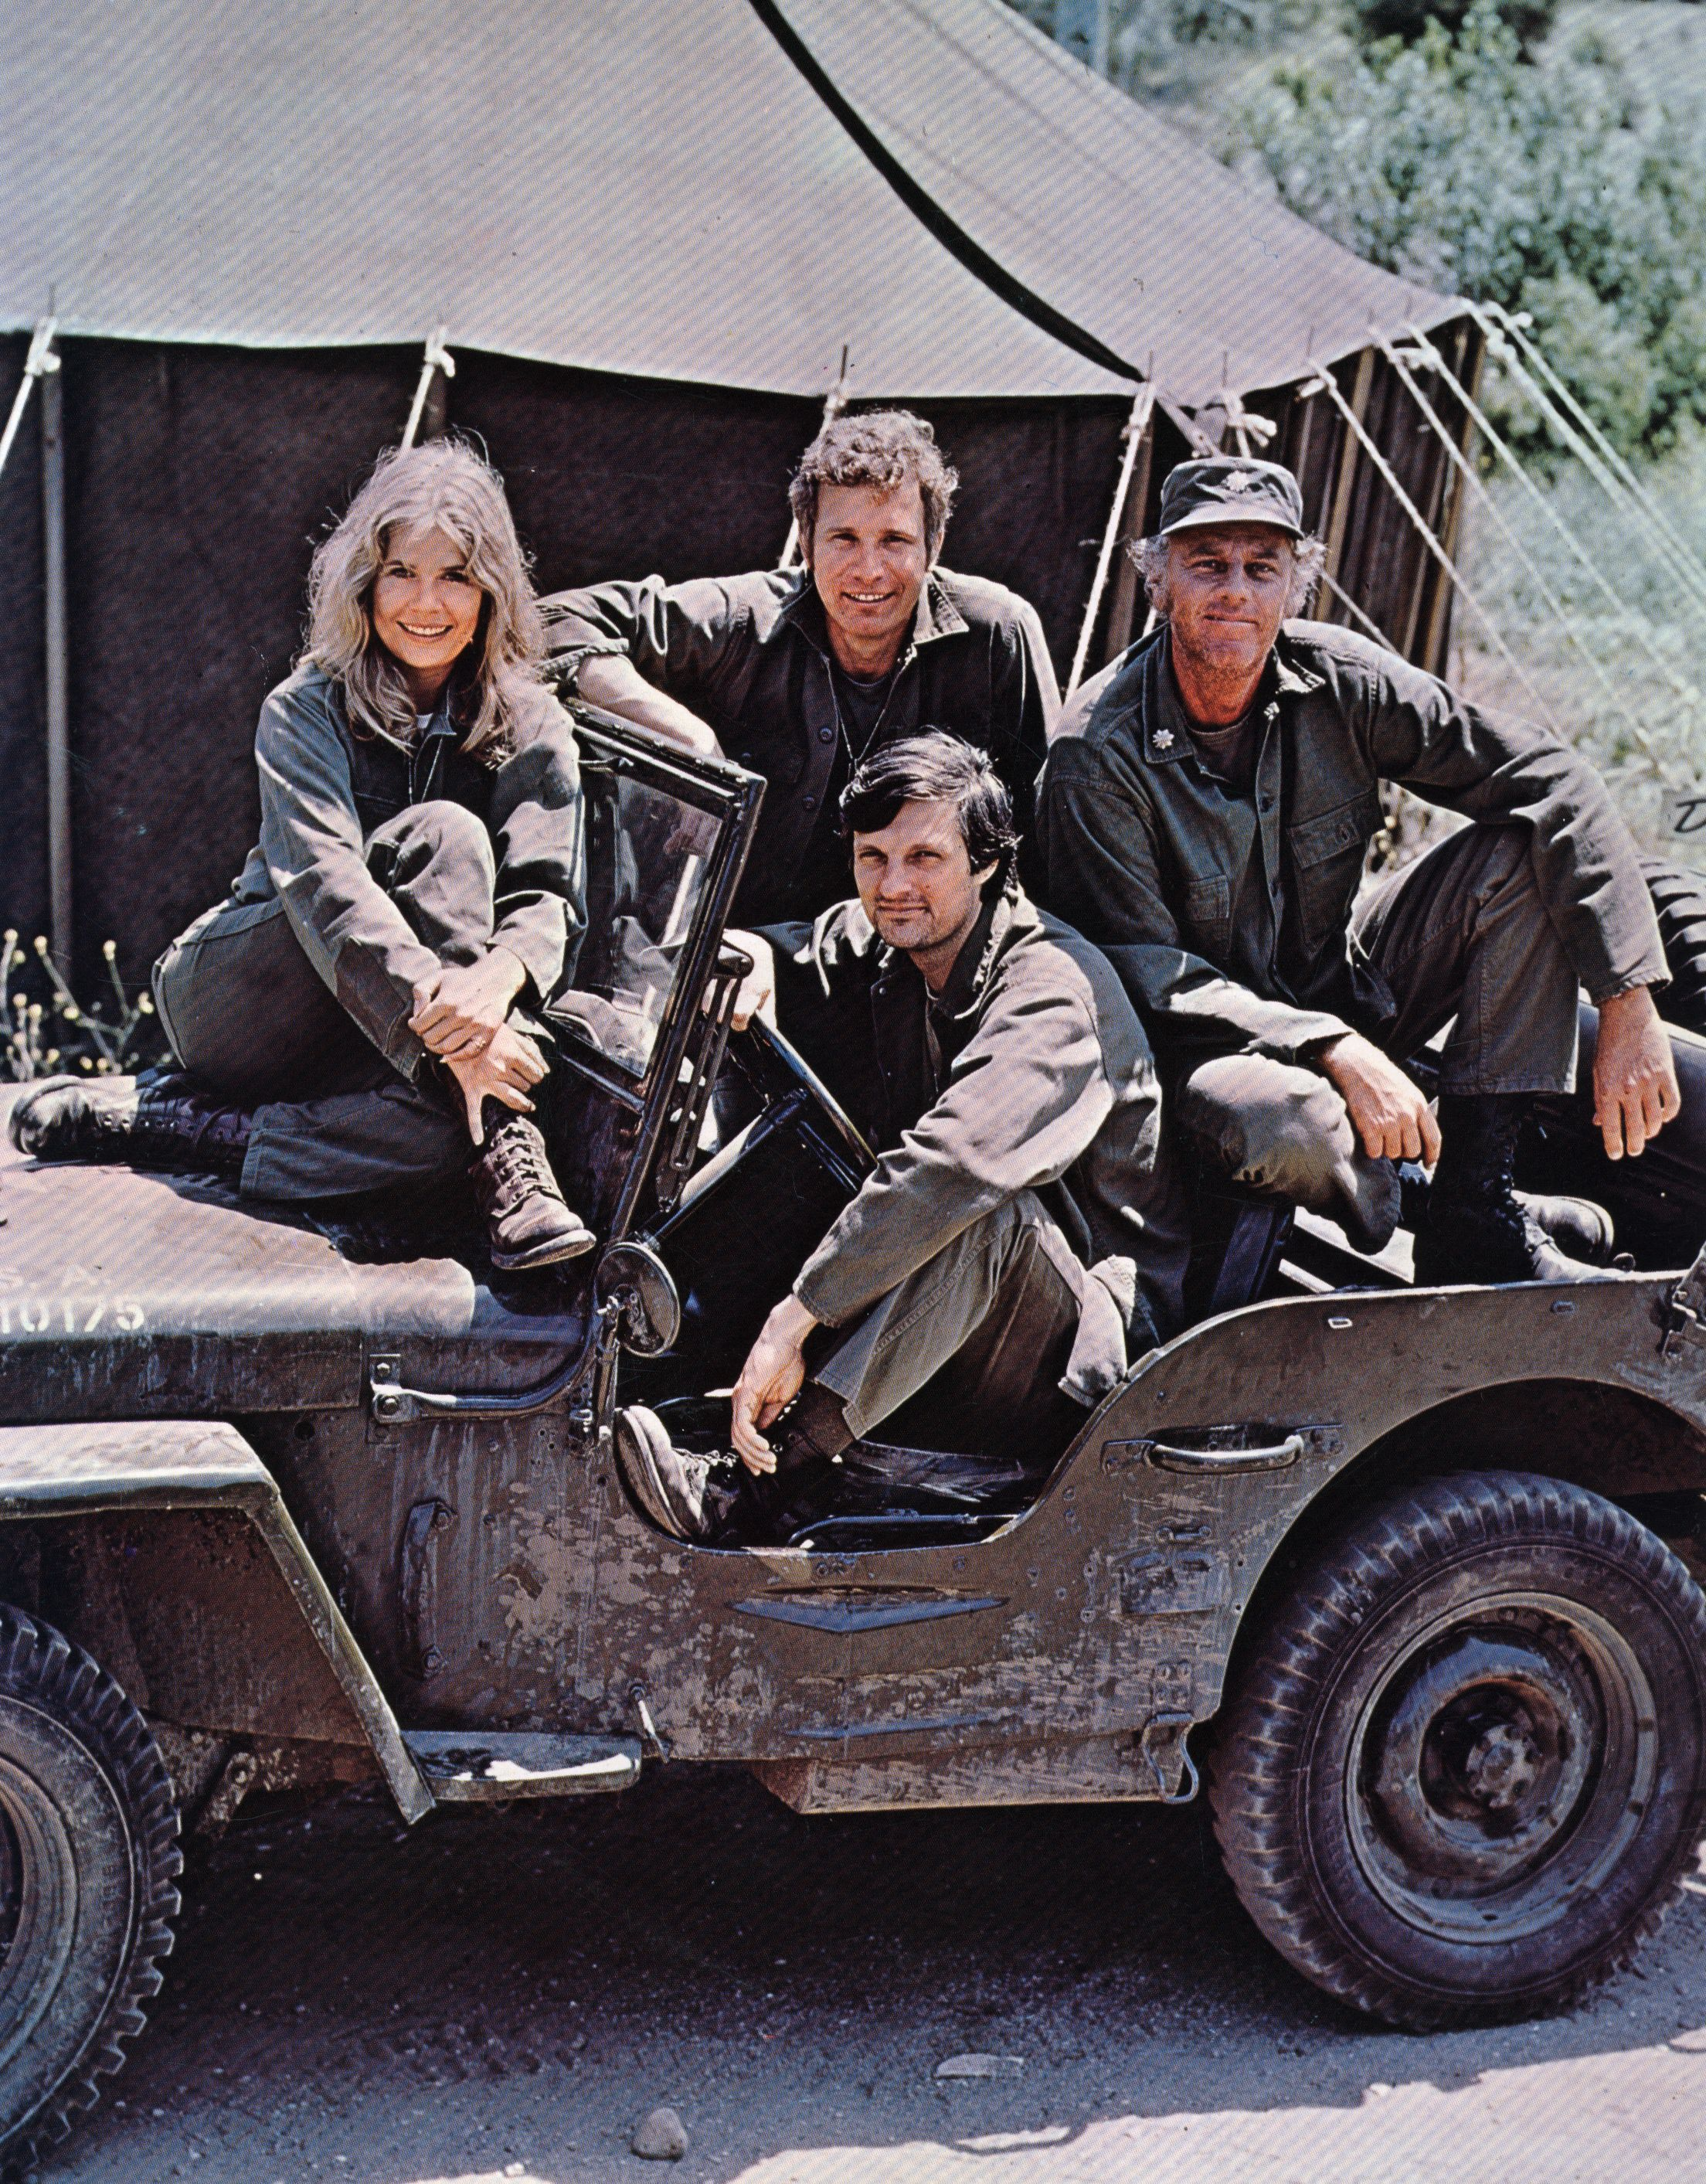 M*A*S*H*. Image Credit: Getty Images